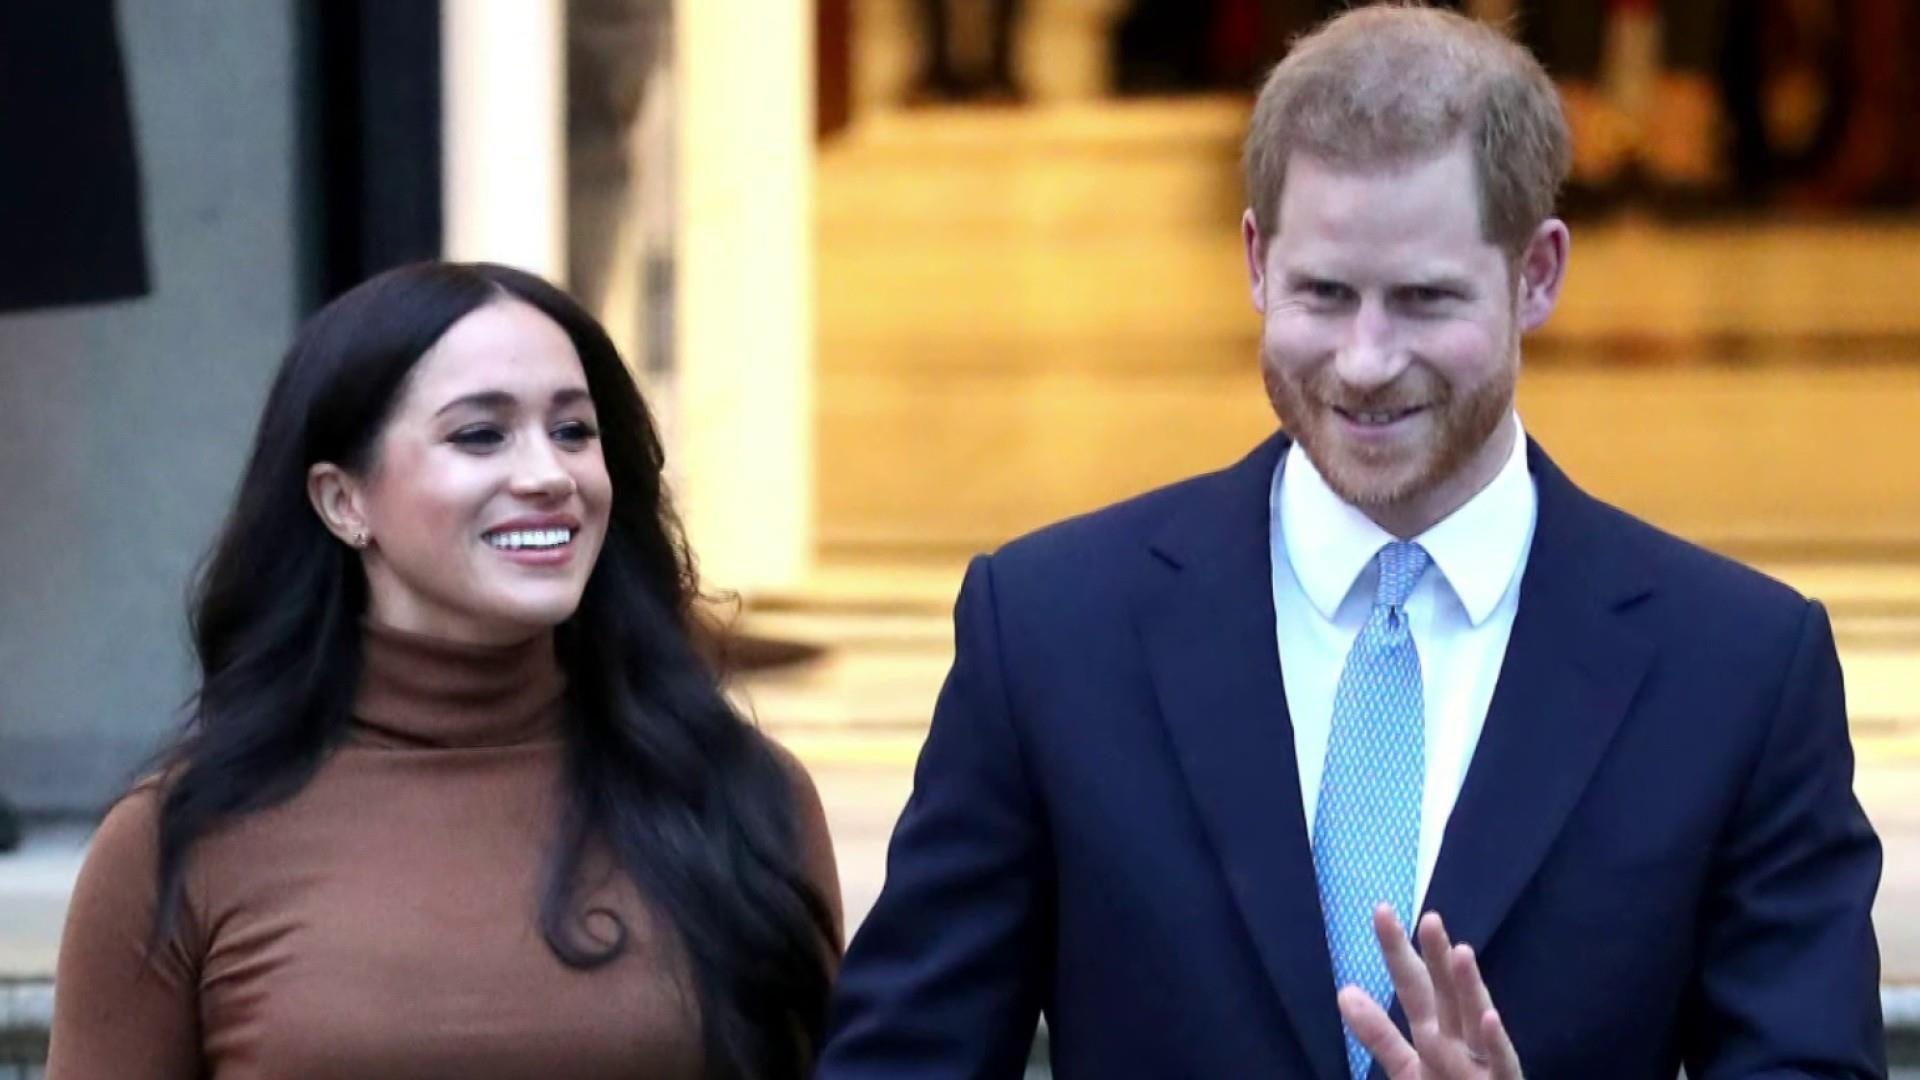 Queen releases statement on Meghan and Harry's future as royals